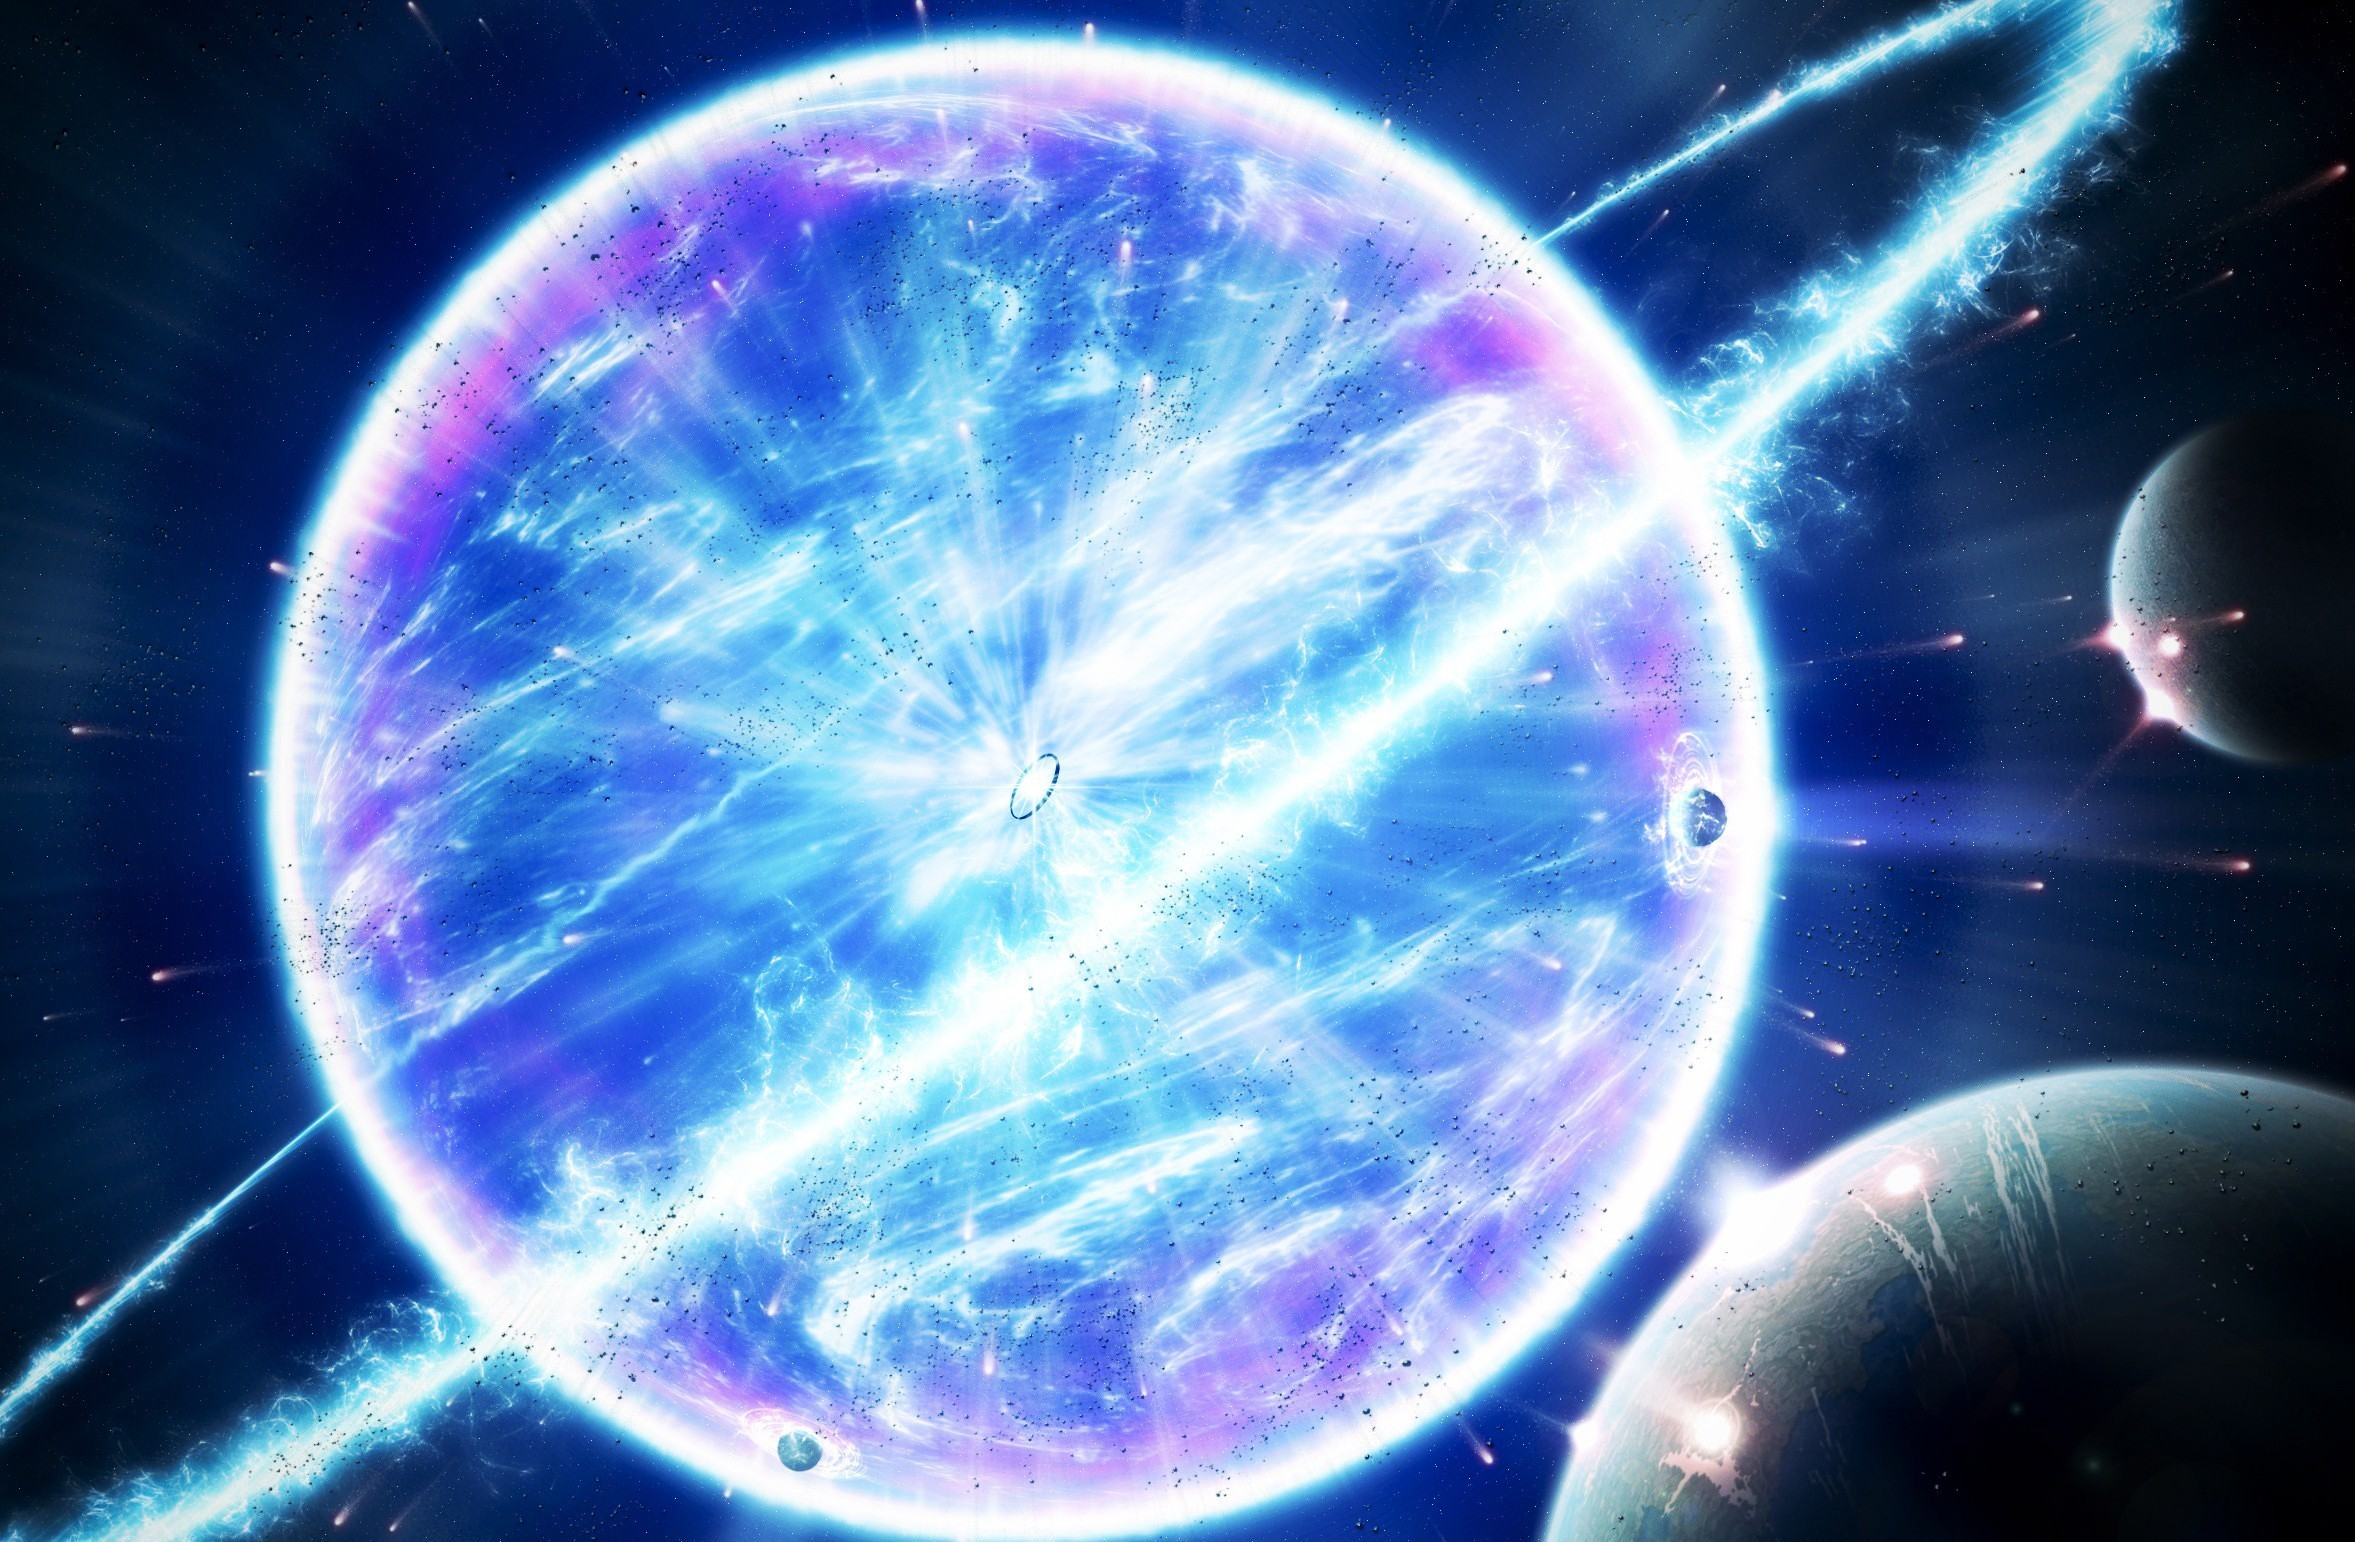 Space Supernova Outer Planets HD Wallpaper